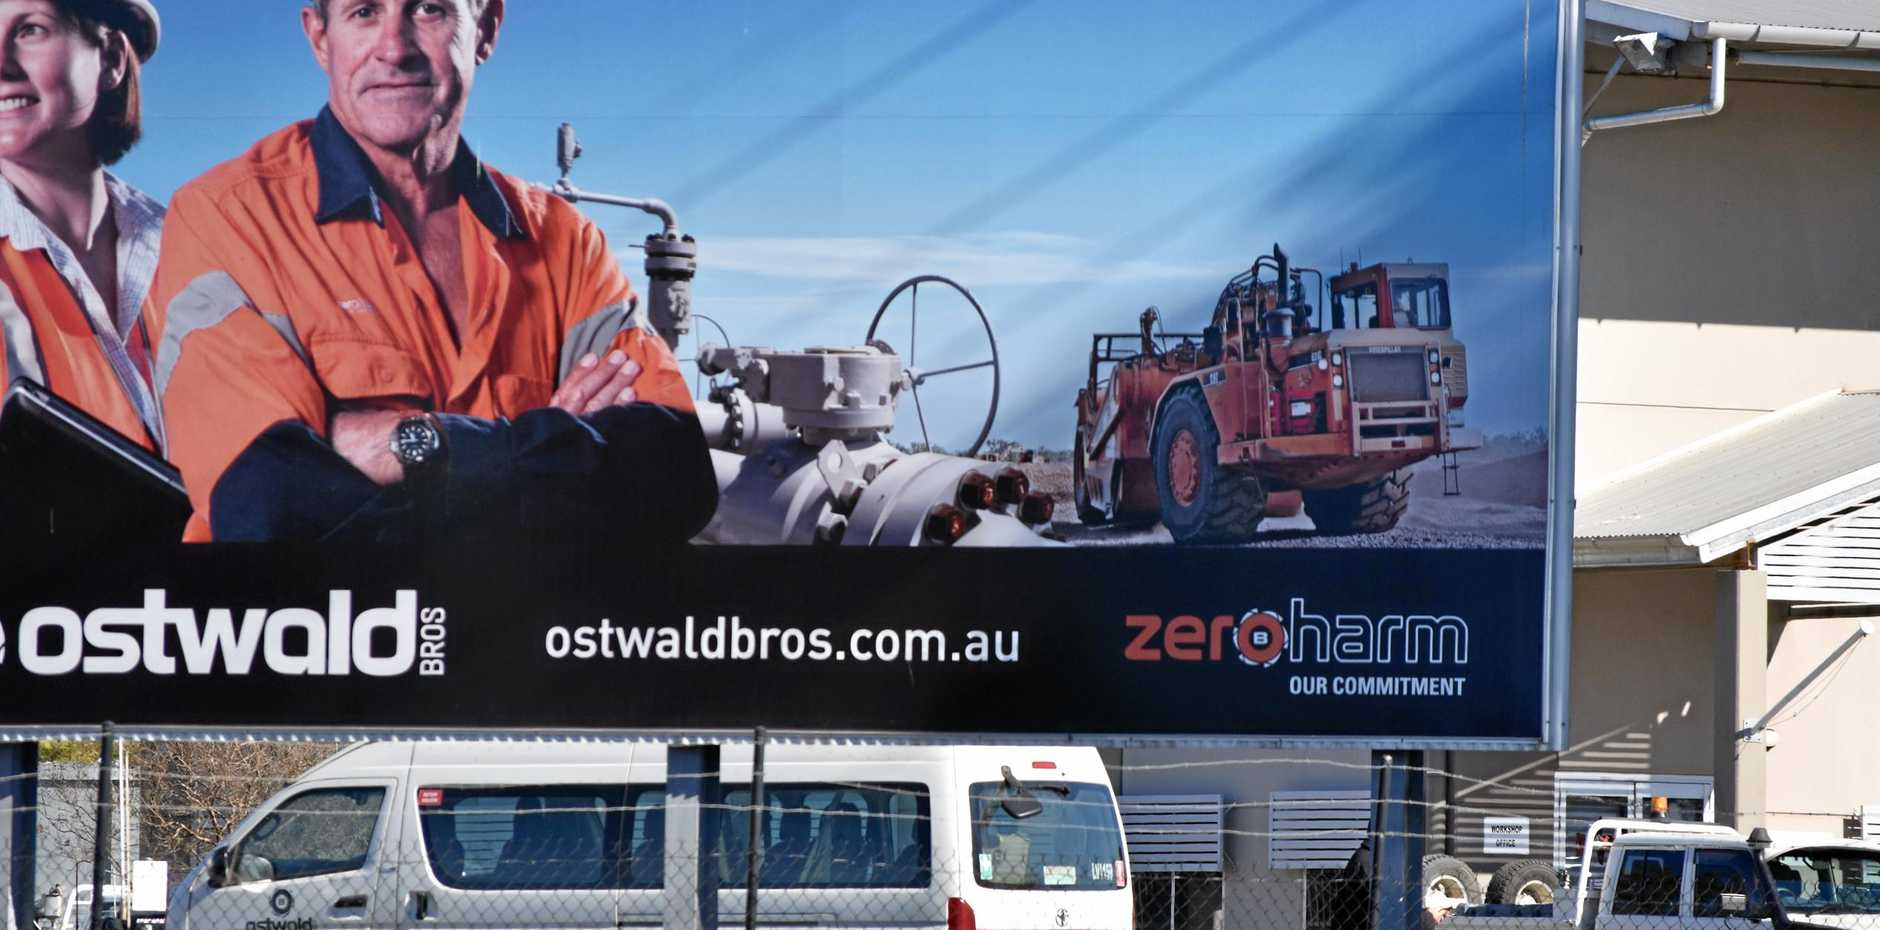 Dalby-based Ostwald Bros announced 260 redundancies last month.